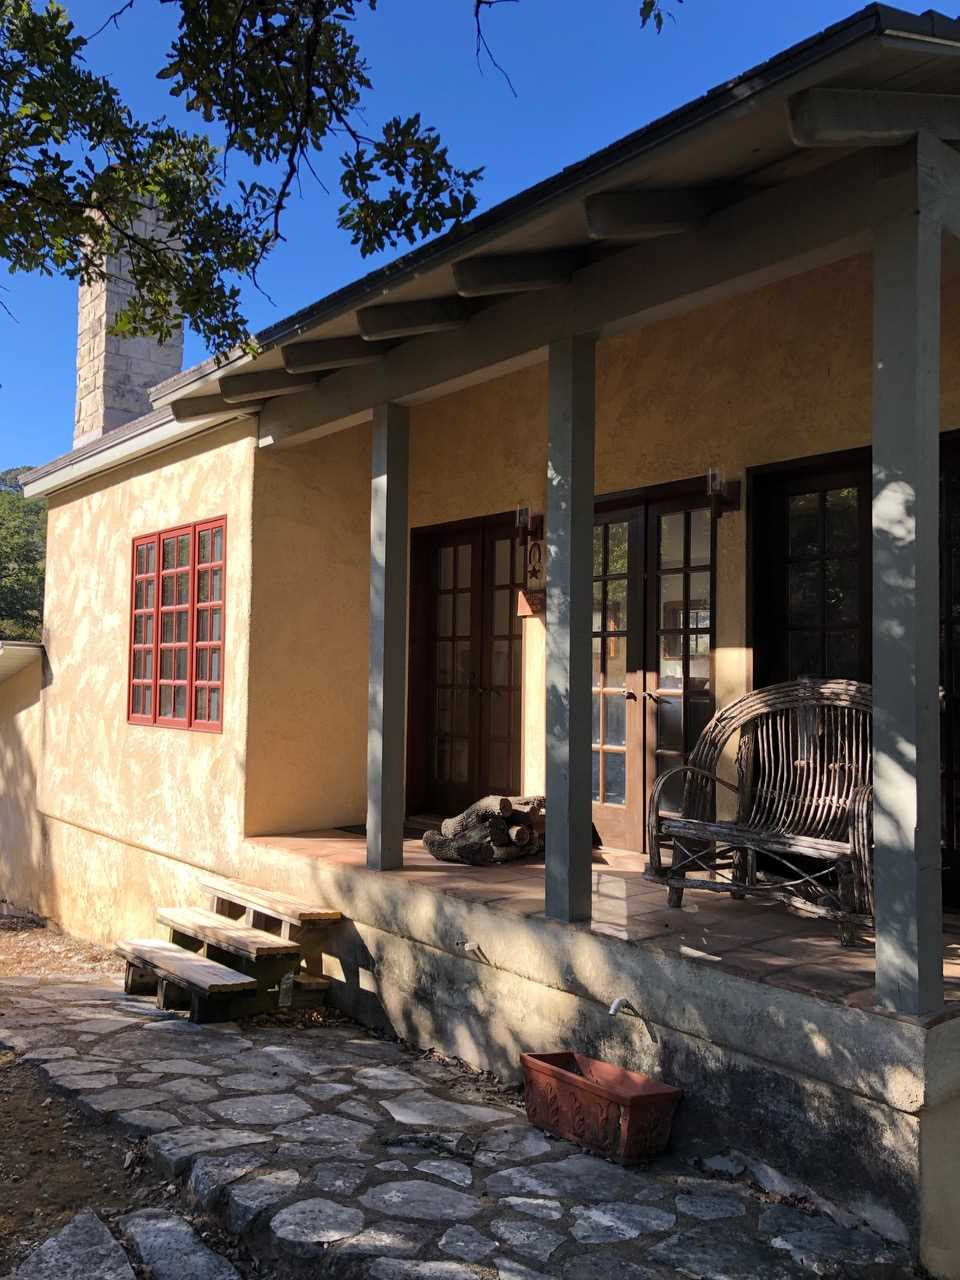 Don't forget there are three properties that are all yours when you book the Retreat: the Homestead, Casita, and Hill House. It's like having your own private holiday compound!